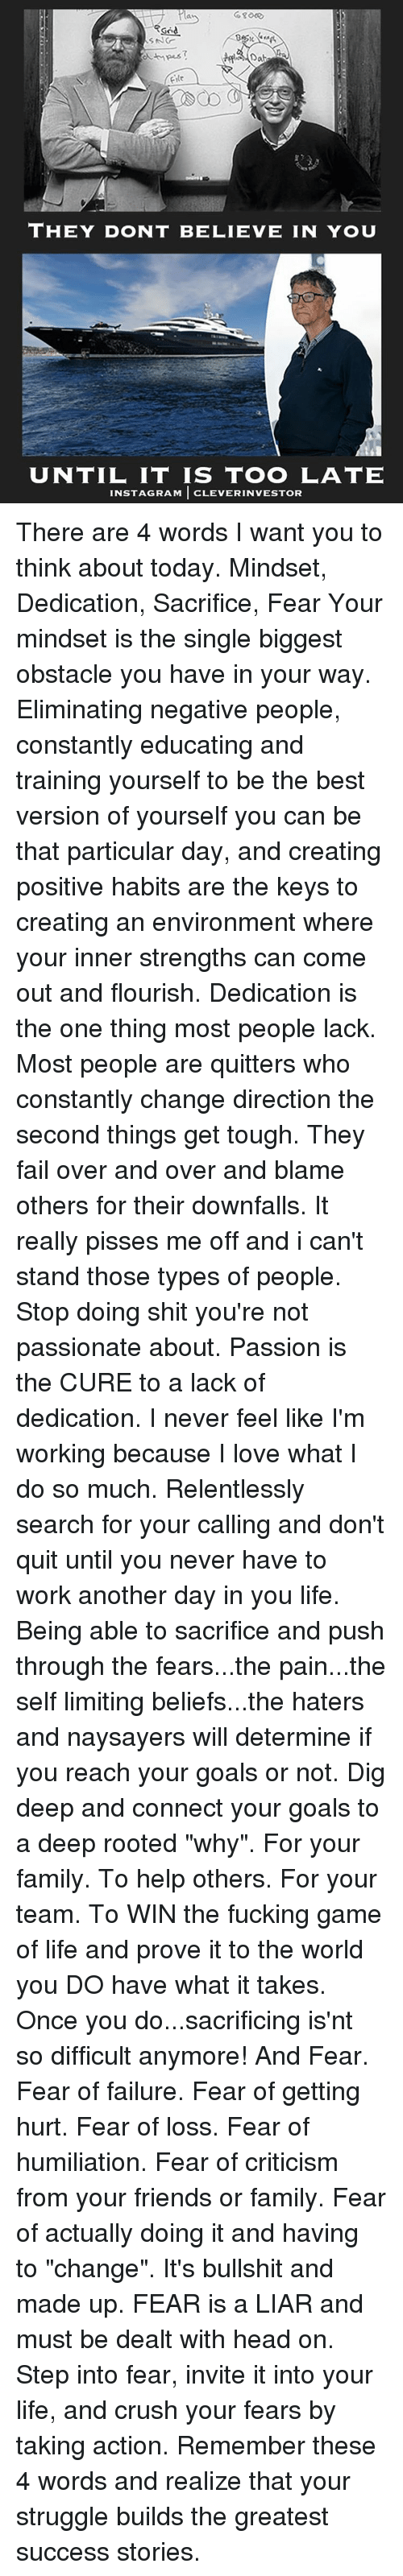 the passion that pushed me through life My life has value ' so, i want you to shit will be peddled for truth on this network so, you listen to me damn it and if you can't work up a winter.